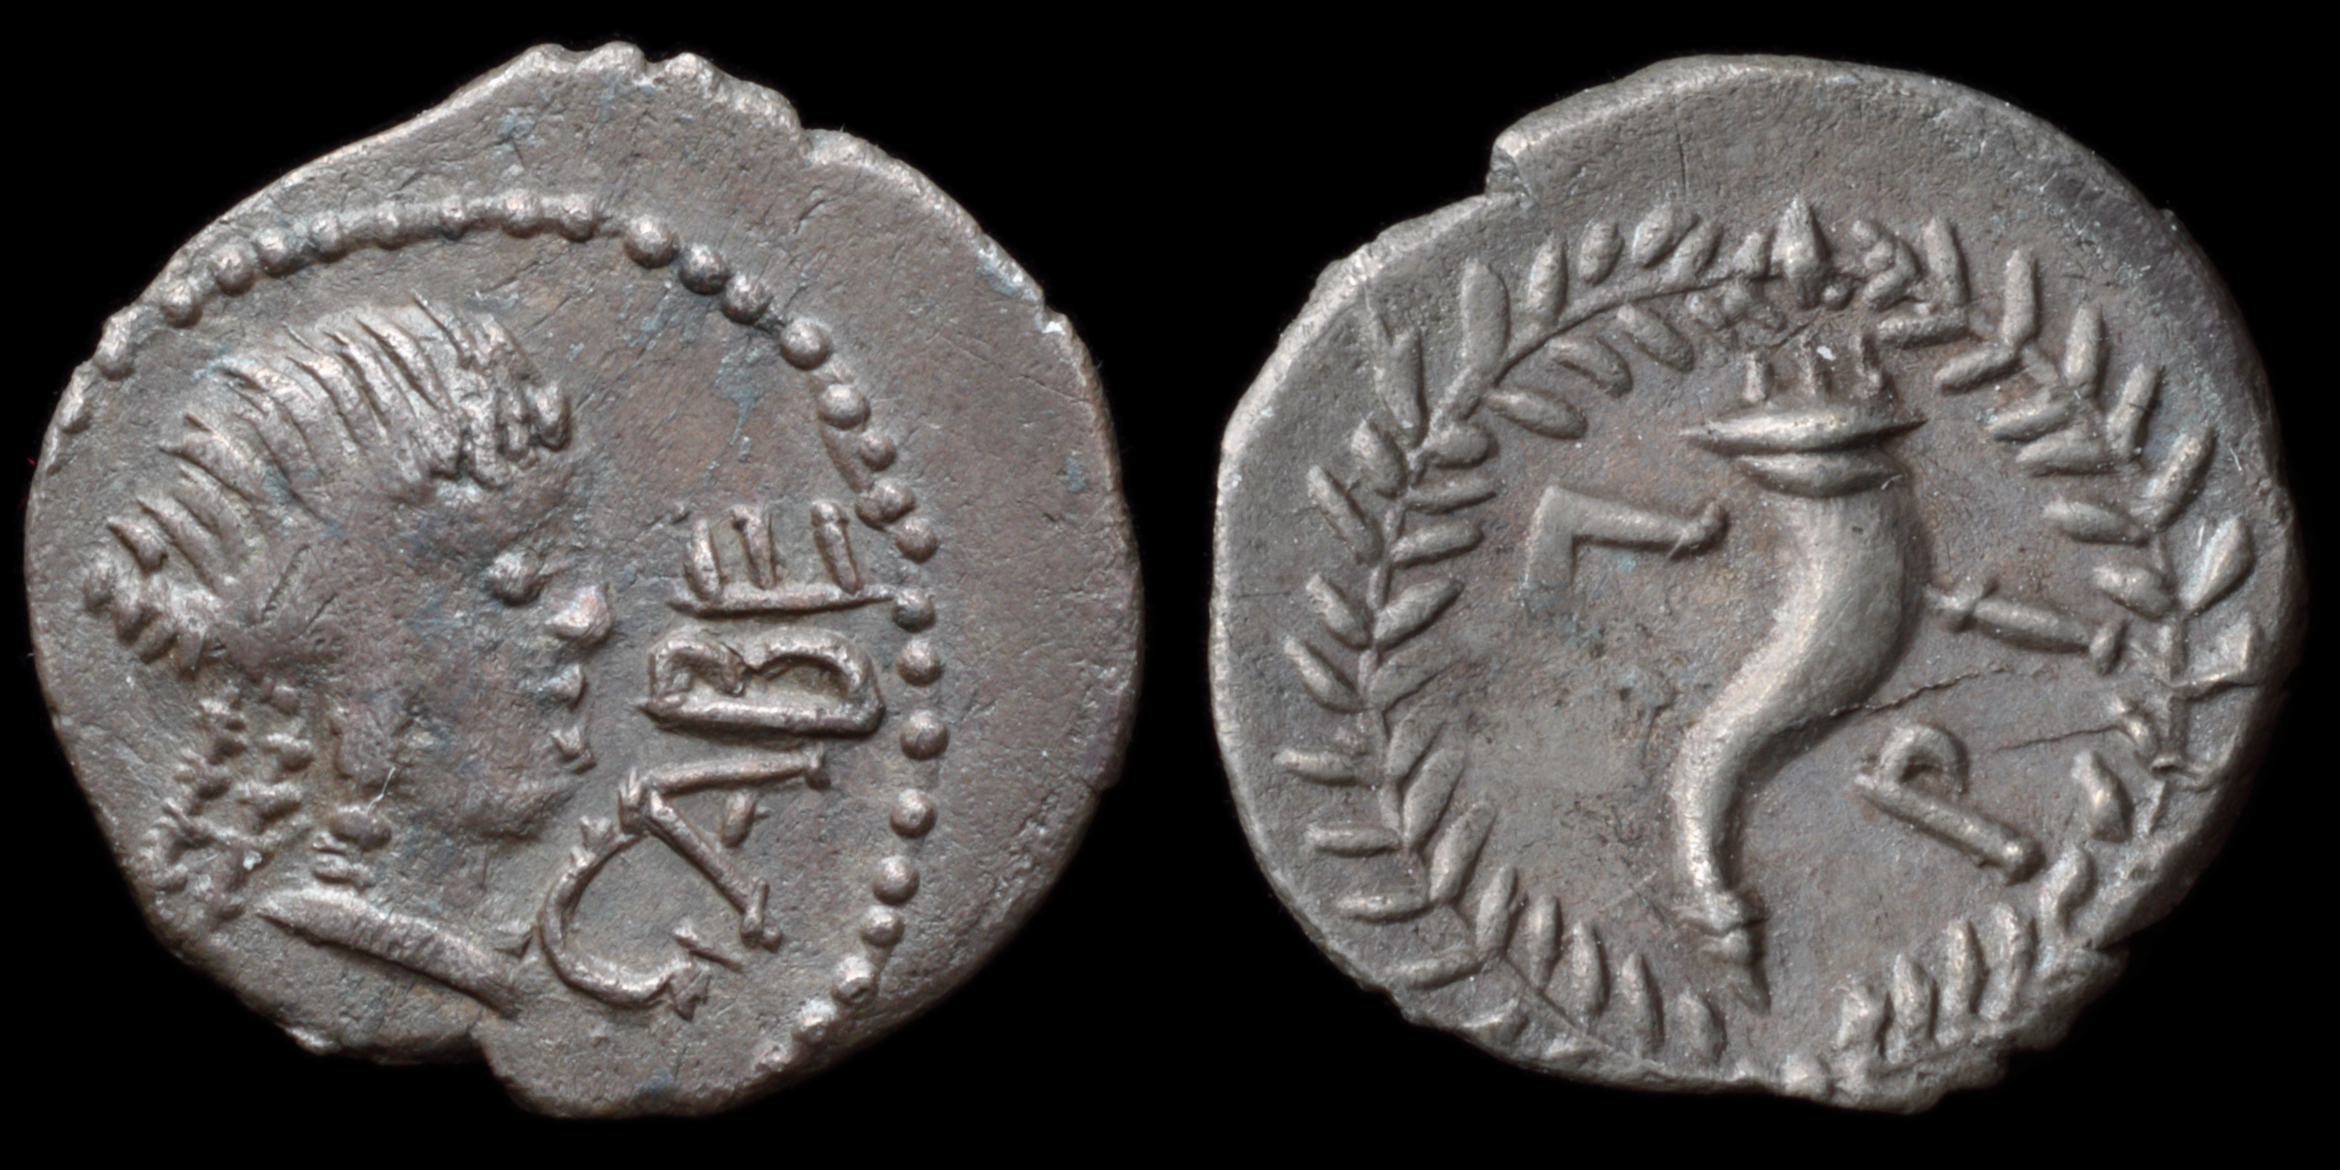 /Files/Images/Coinsite/CoinDB/1520_Lepidus_Cabellio.jpg